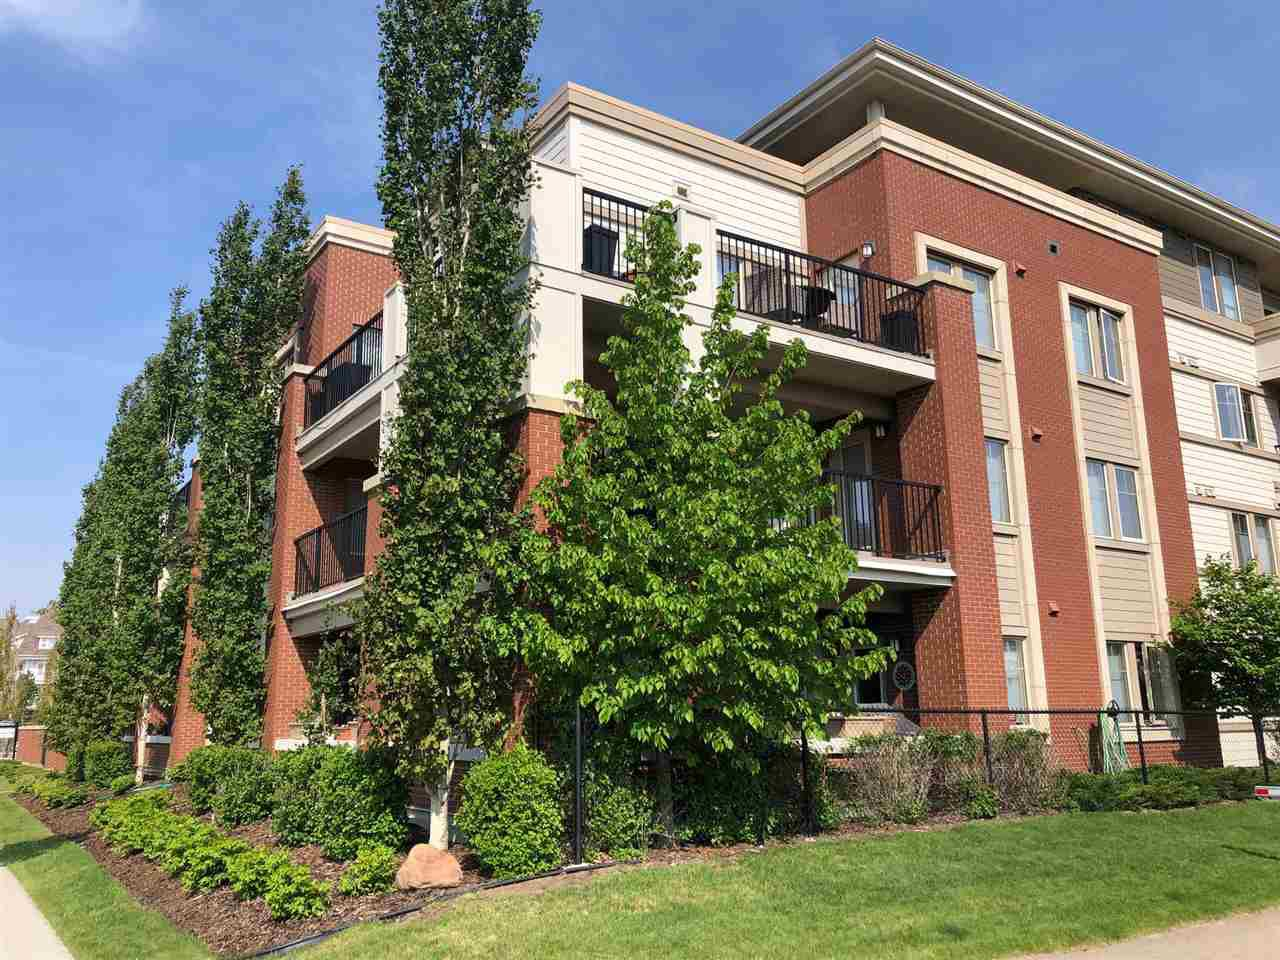 Main Photo: 310 4450 MCCRAE Avenue in Edmonton: Zone 27 Condo for sale : MLS®# E4159224